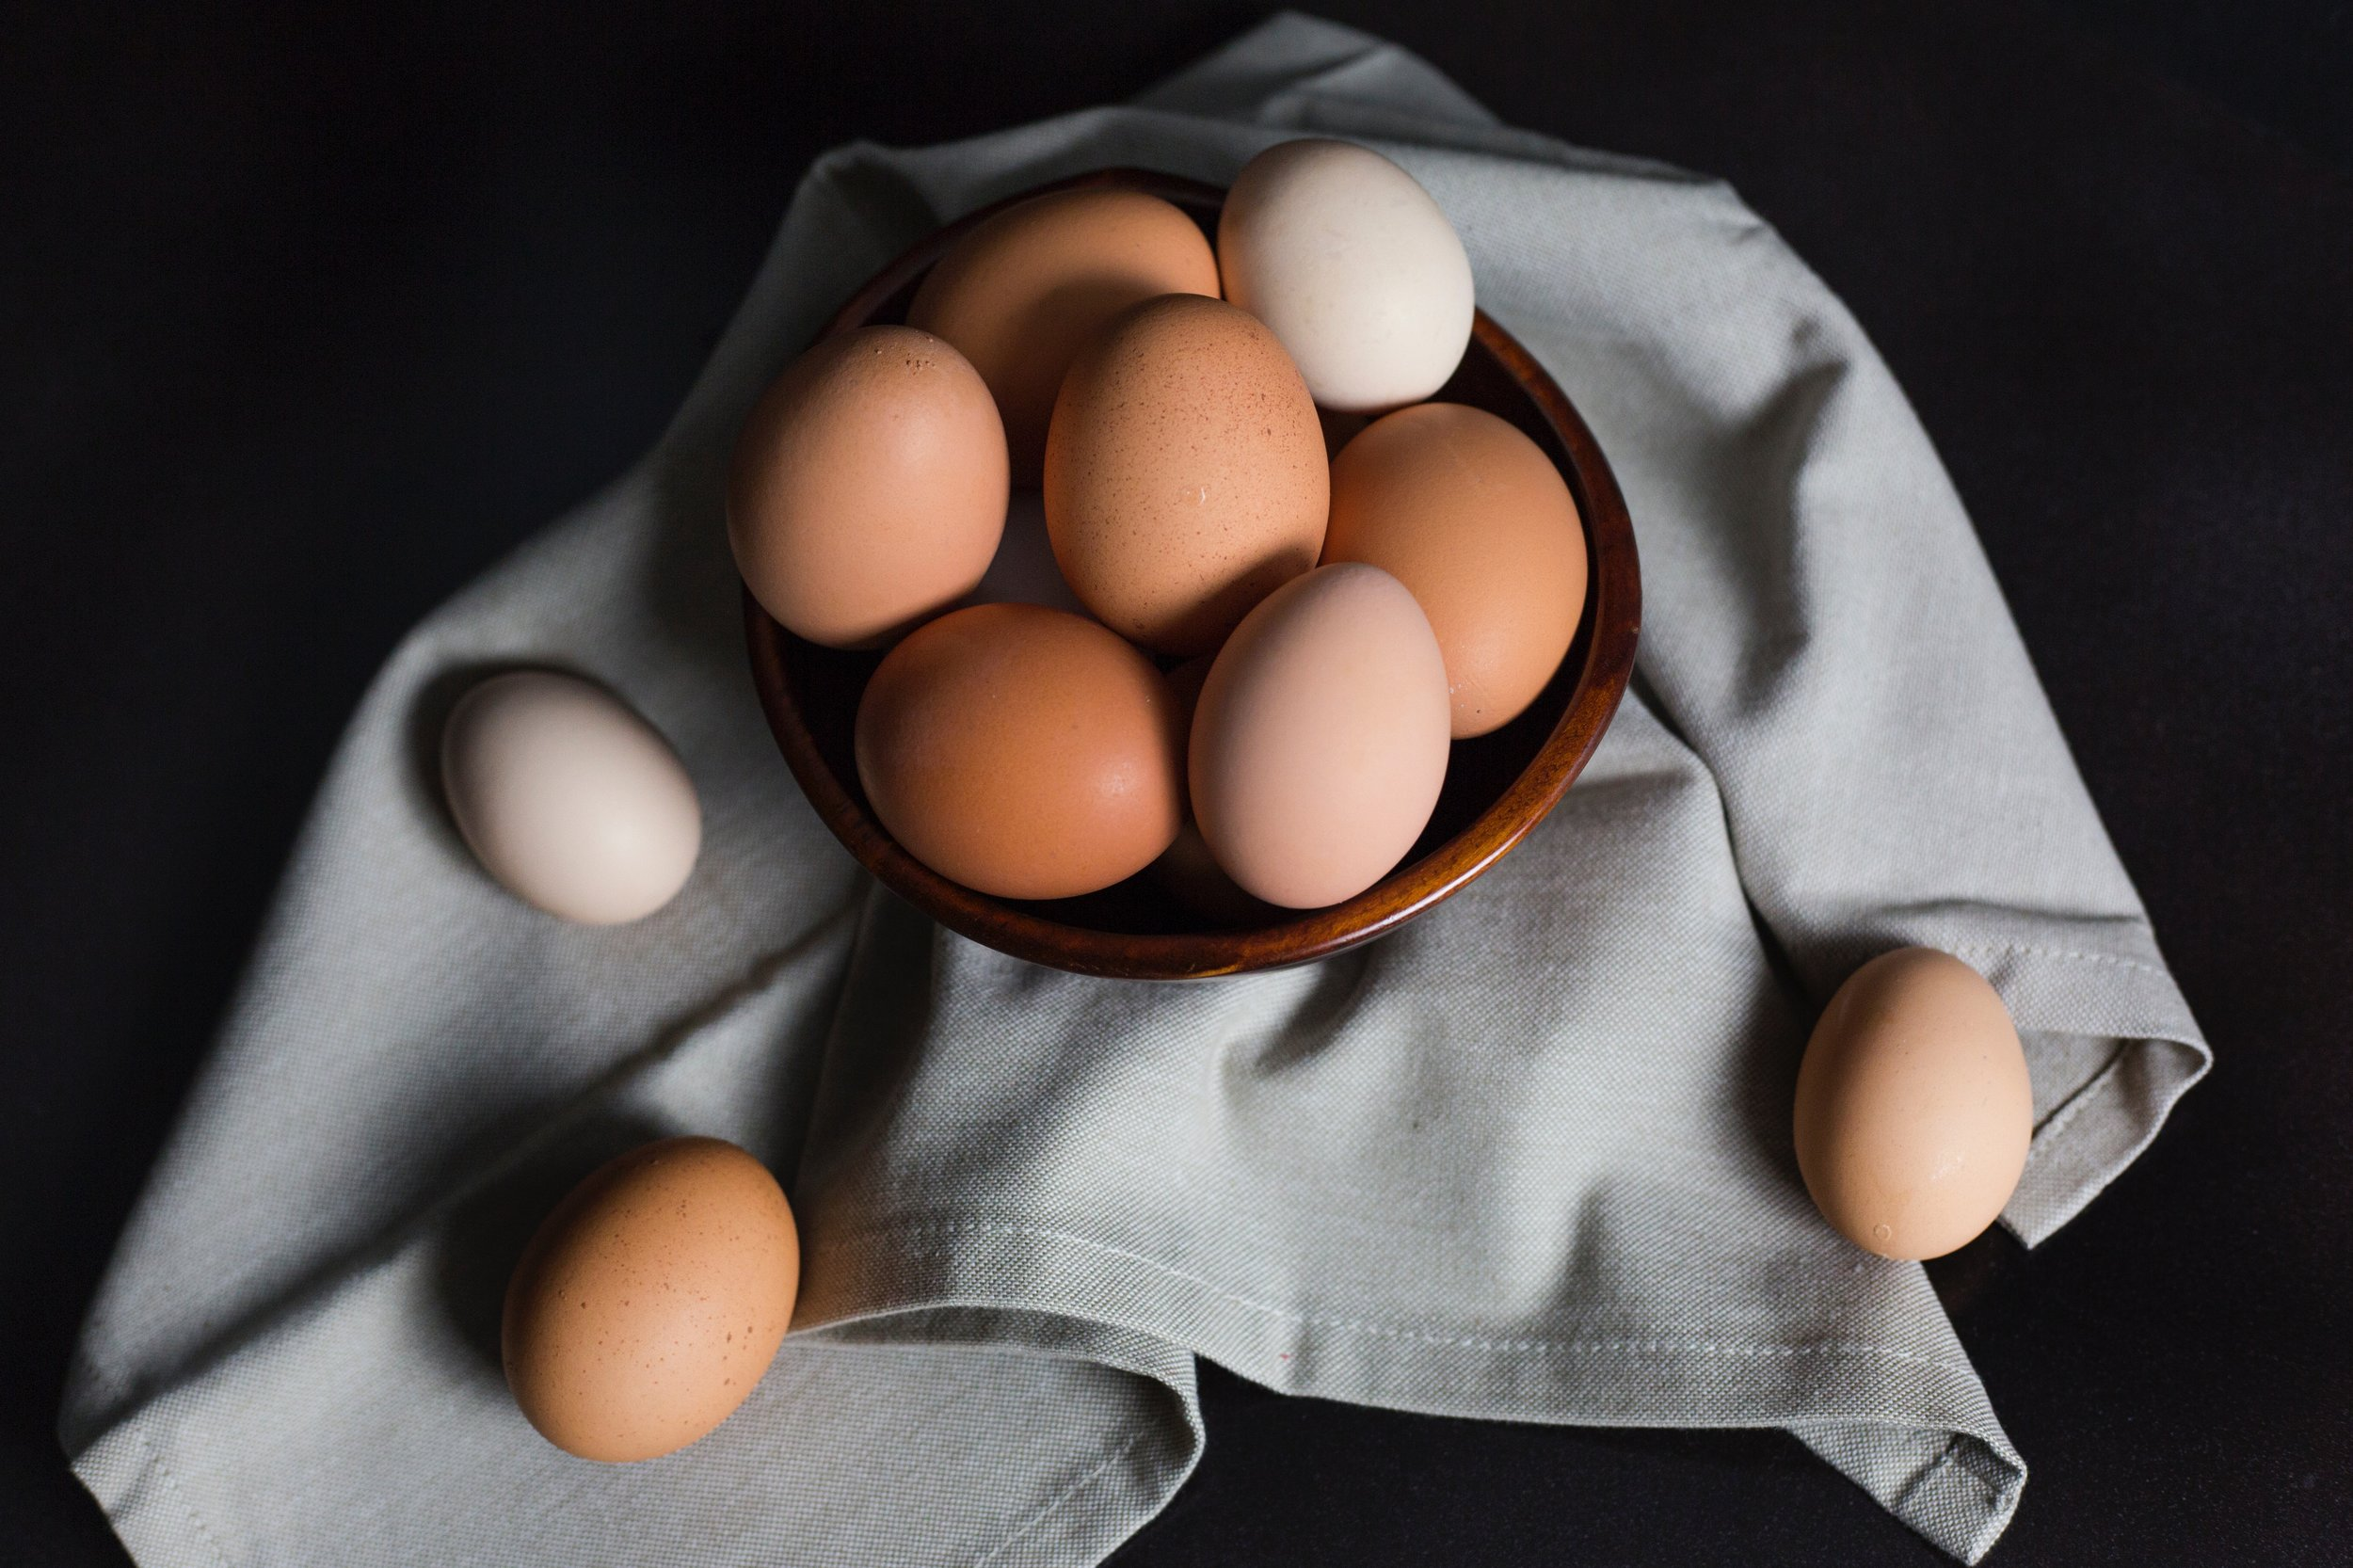 What's Up with Eggs? Are They Good or Bad? -